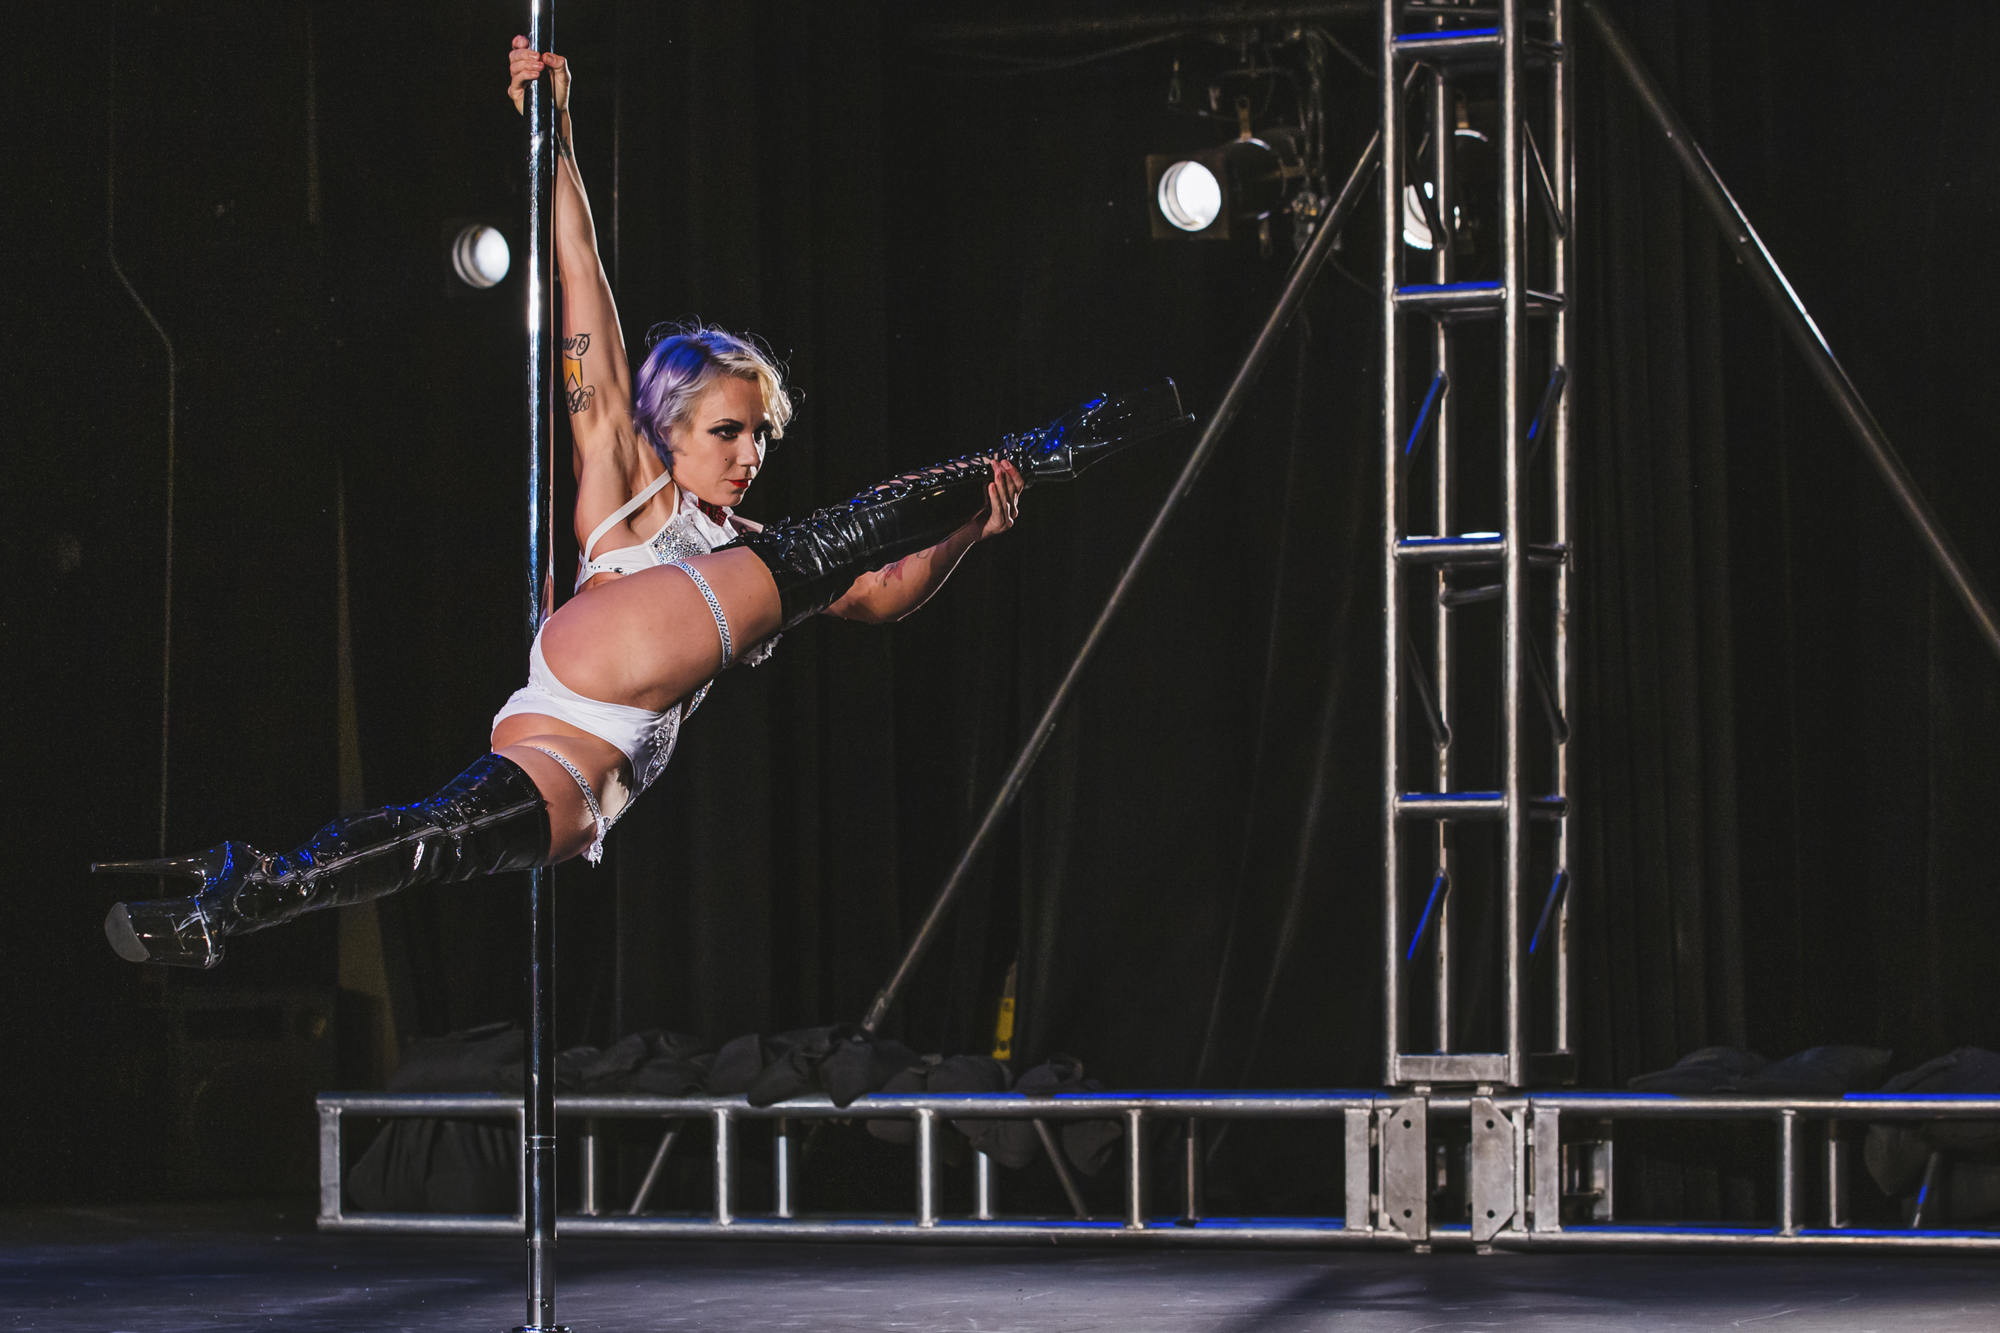 Work out at a gym, and think you're strong? Try lifting your full bodyweight and throwing it around a pole - and making it look nice! We saw some incredible feats of physicality at this weekend's 2018 Northwest Pole Championships. Competitive categories were Championship, Dramatic, Entertainment, Exotic, Doubles/Groups and Floorwork - with ages ranging from Junior (18-29) to Grand Master (50+). (Image: Sunita Martini / Seattle Refined)